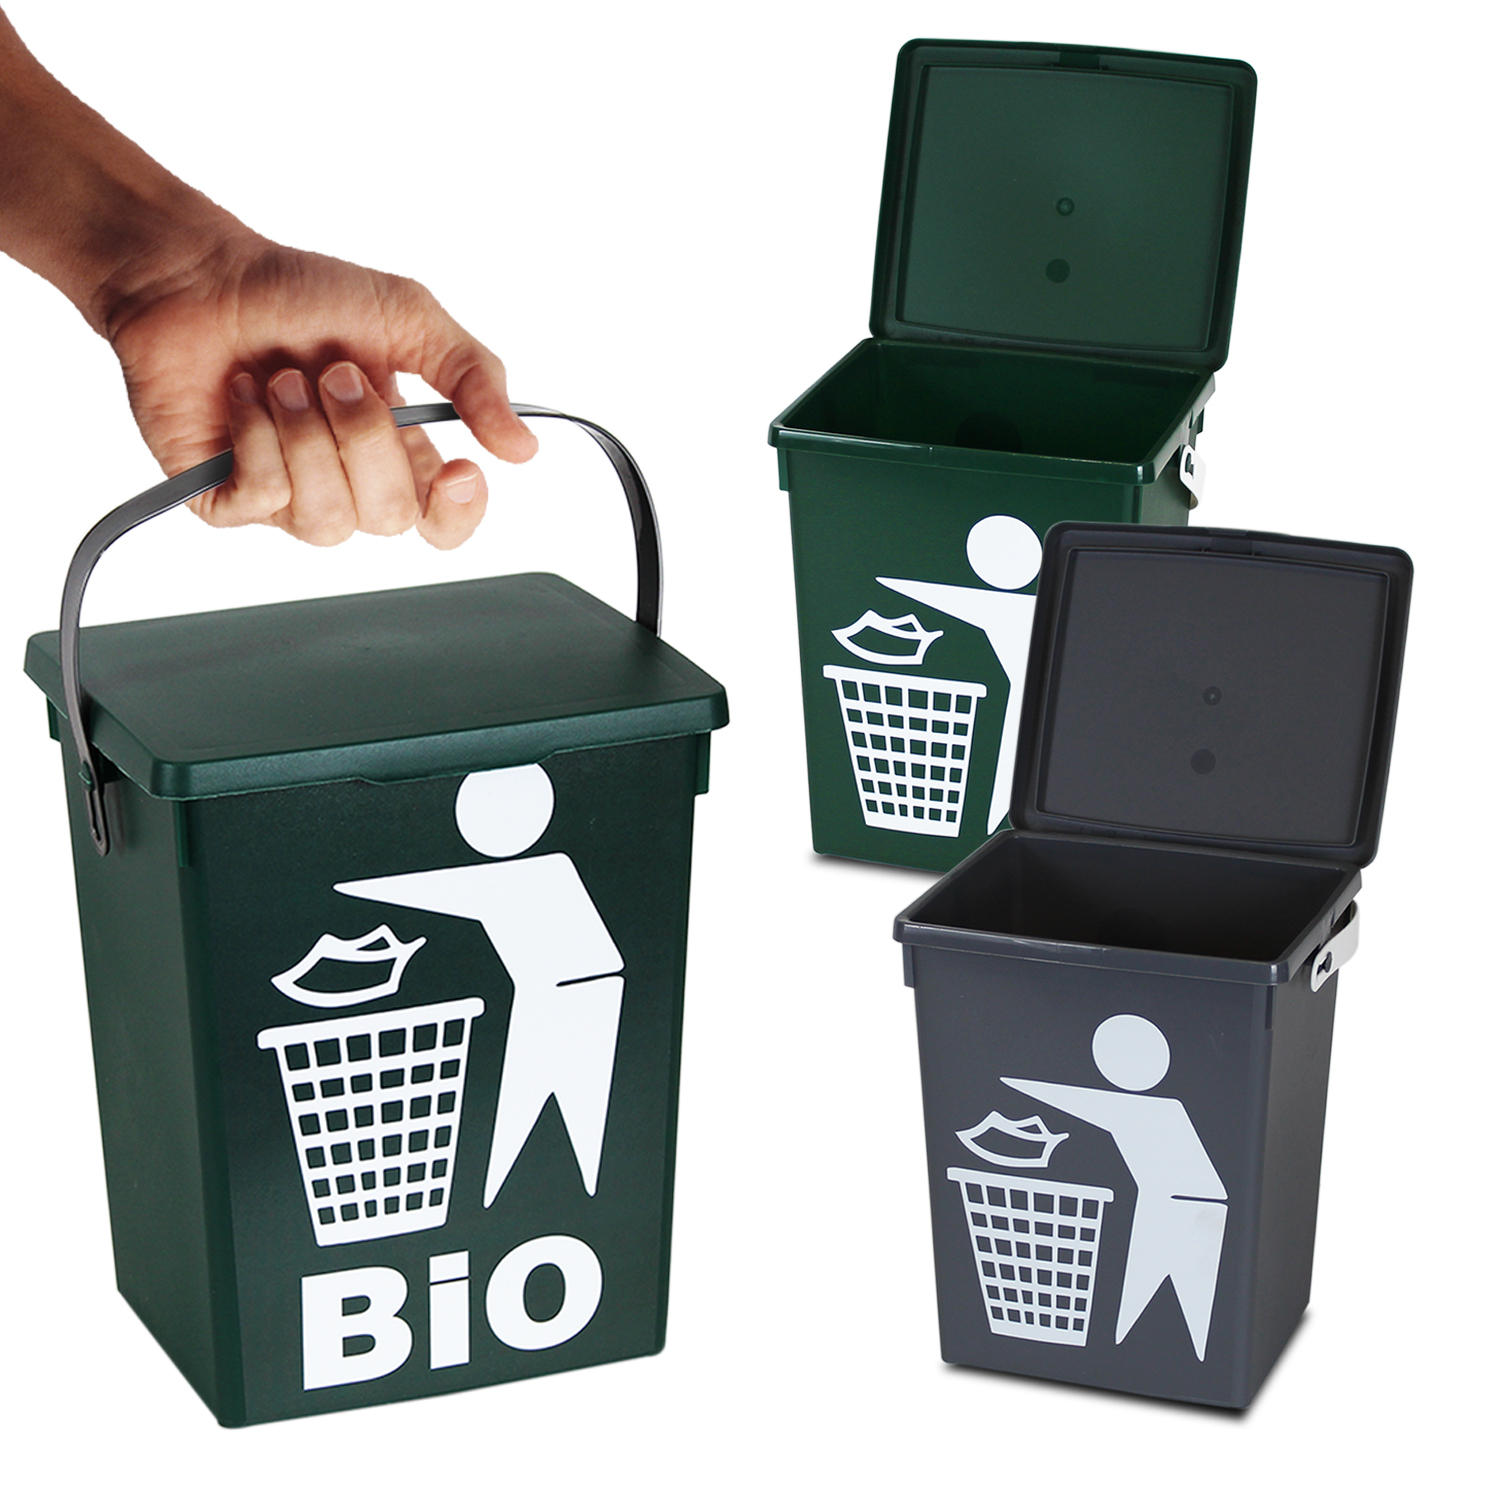 Details about 5 Litre Small Table Top Food Recycling Bin Kitchen Recycle  Waste Rubbish Peel